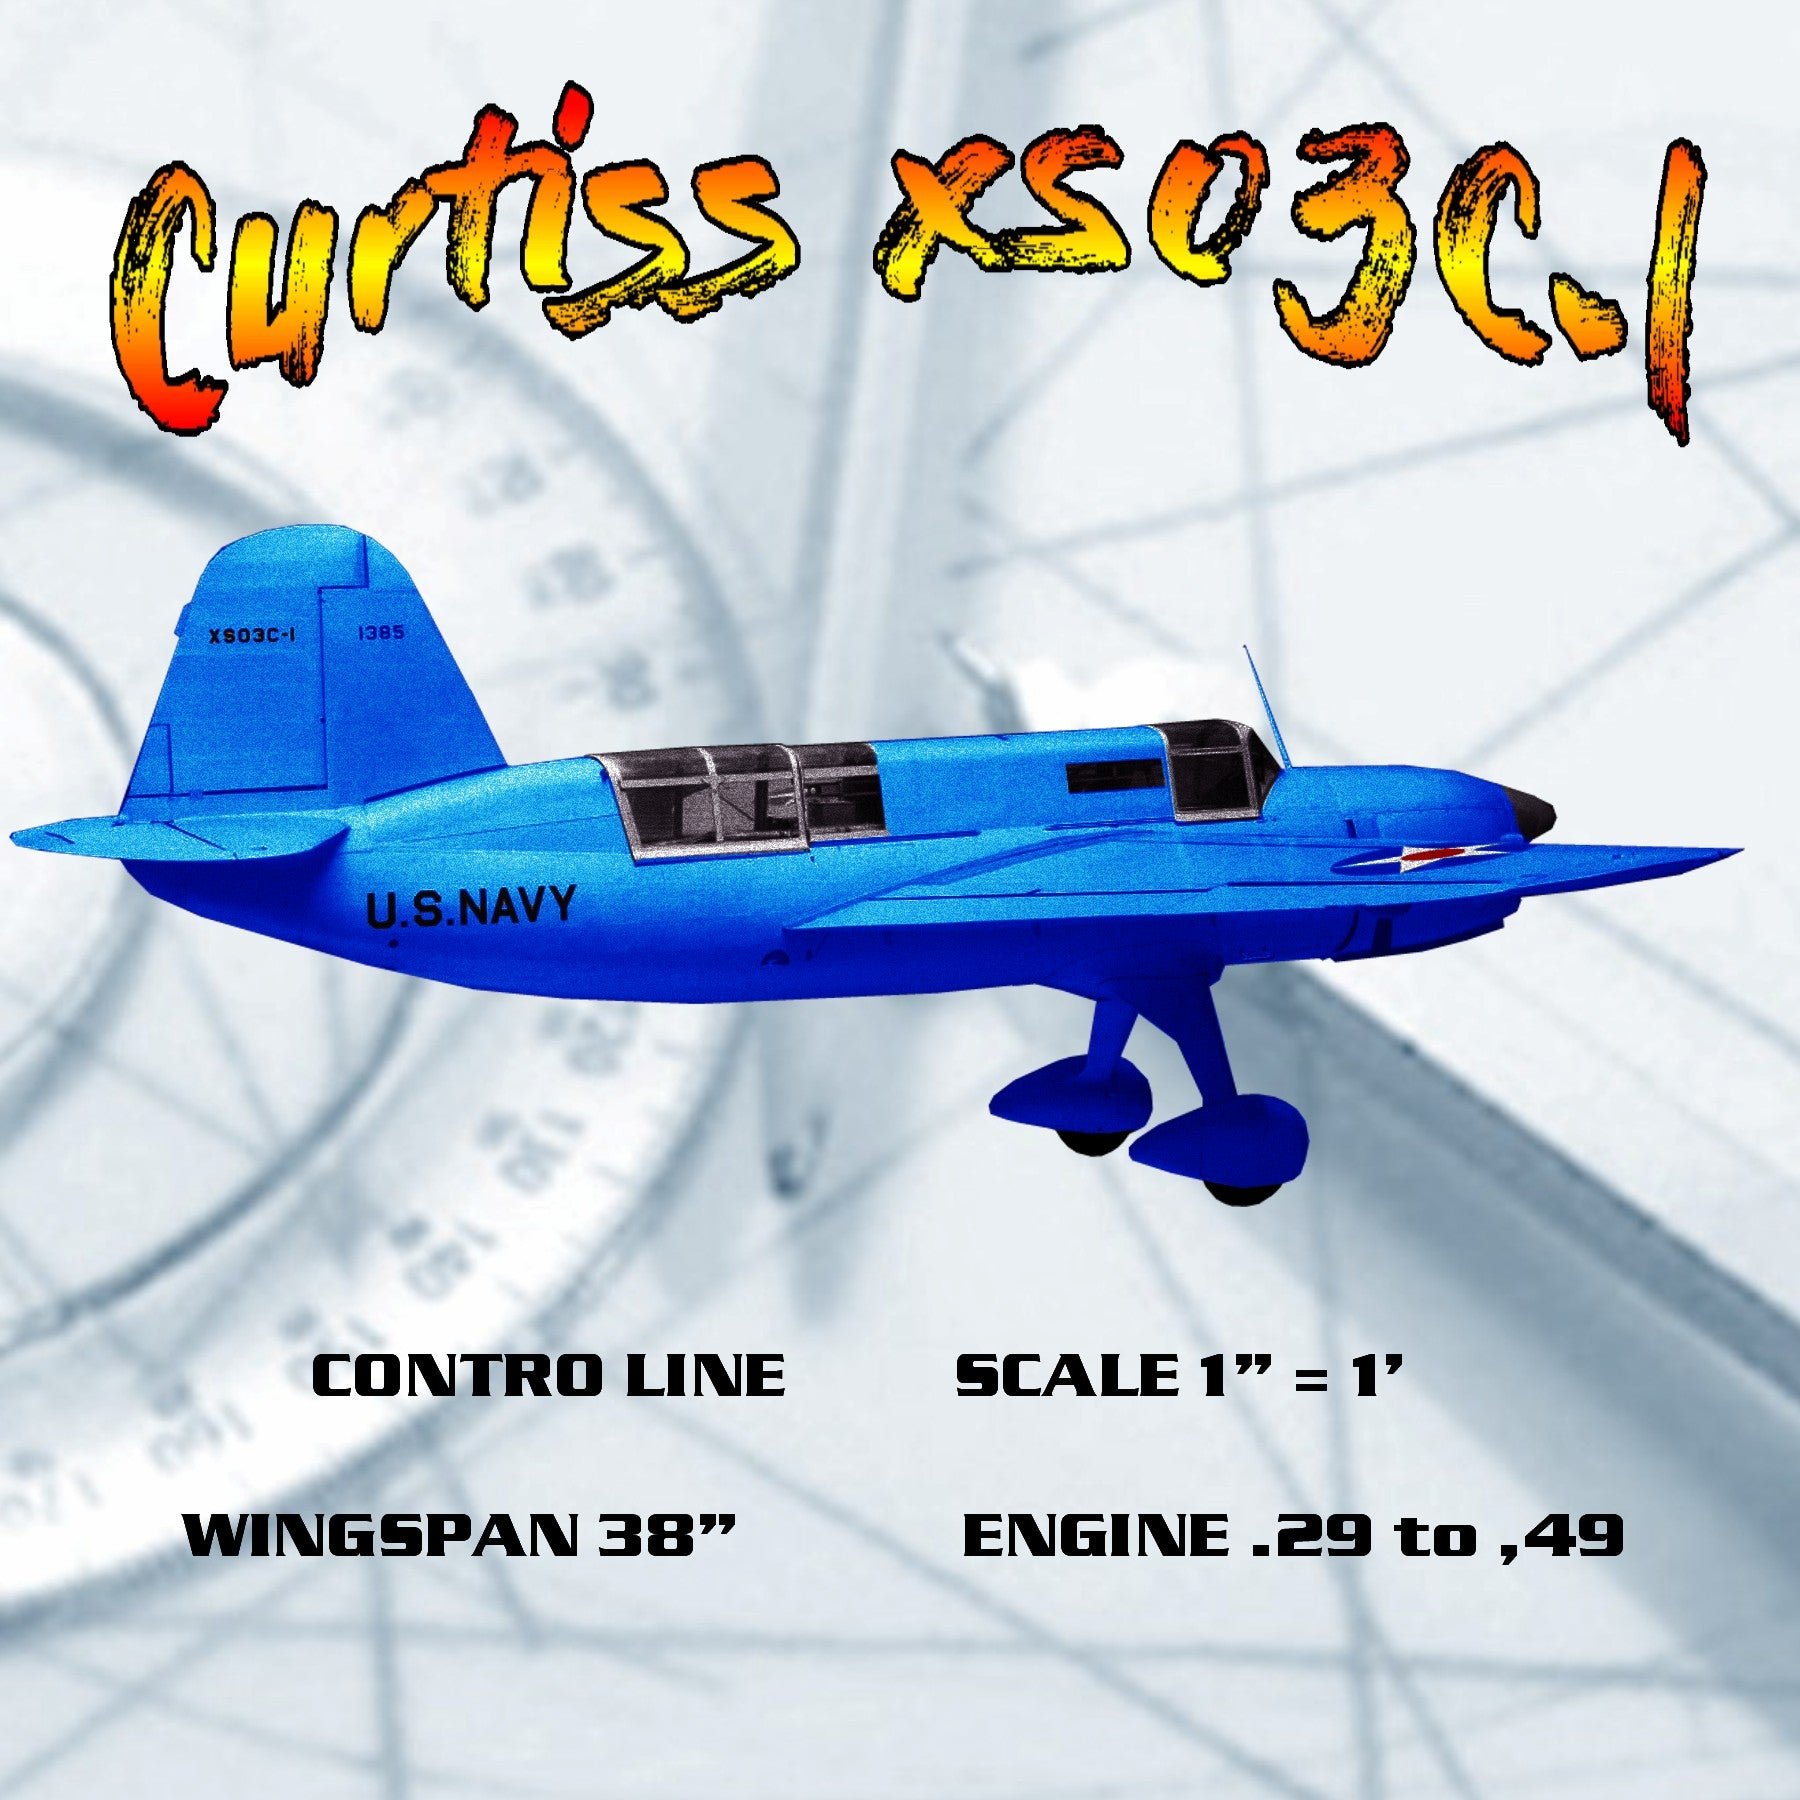 "FULL SIZE Printed Plans CONTROL LINE SCALE 1"" = 1' WINGSPAN 38"" Curtiss XS03C-l"